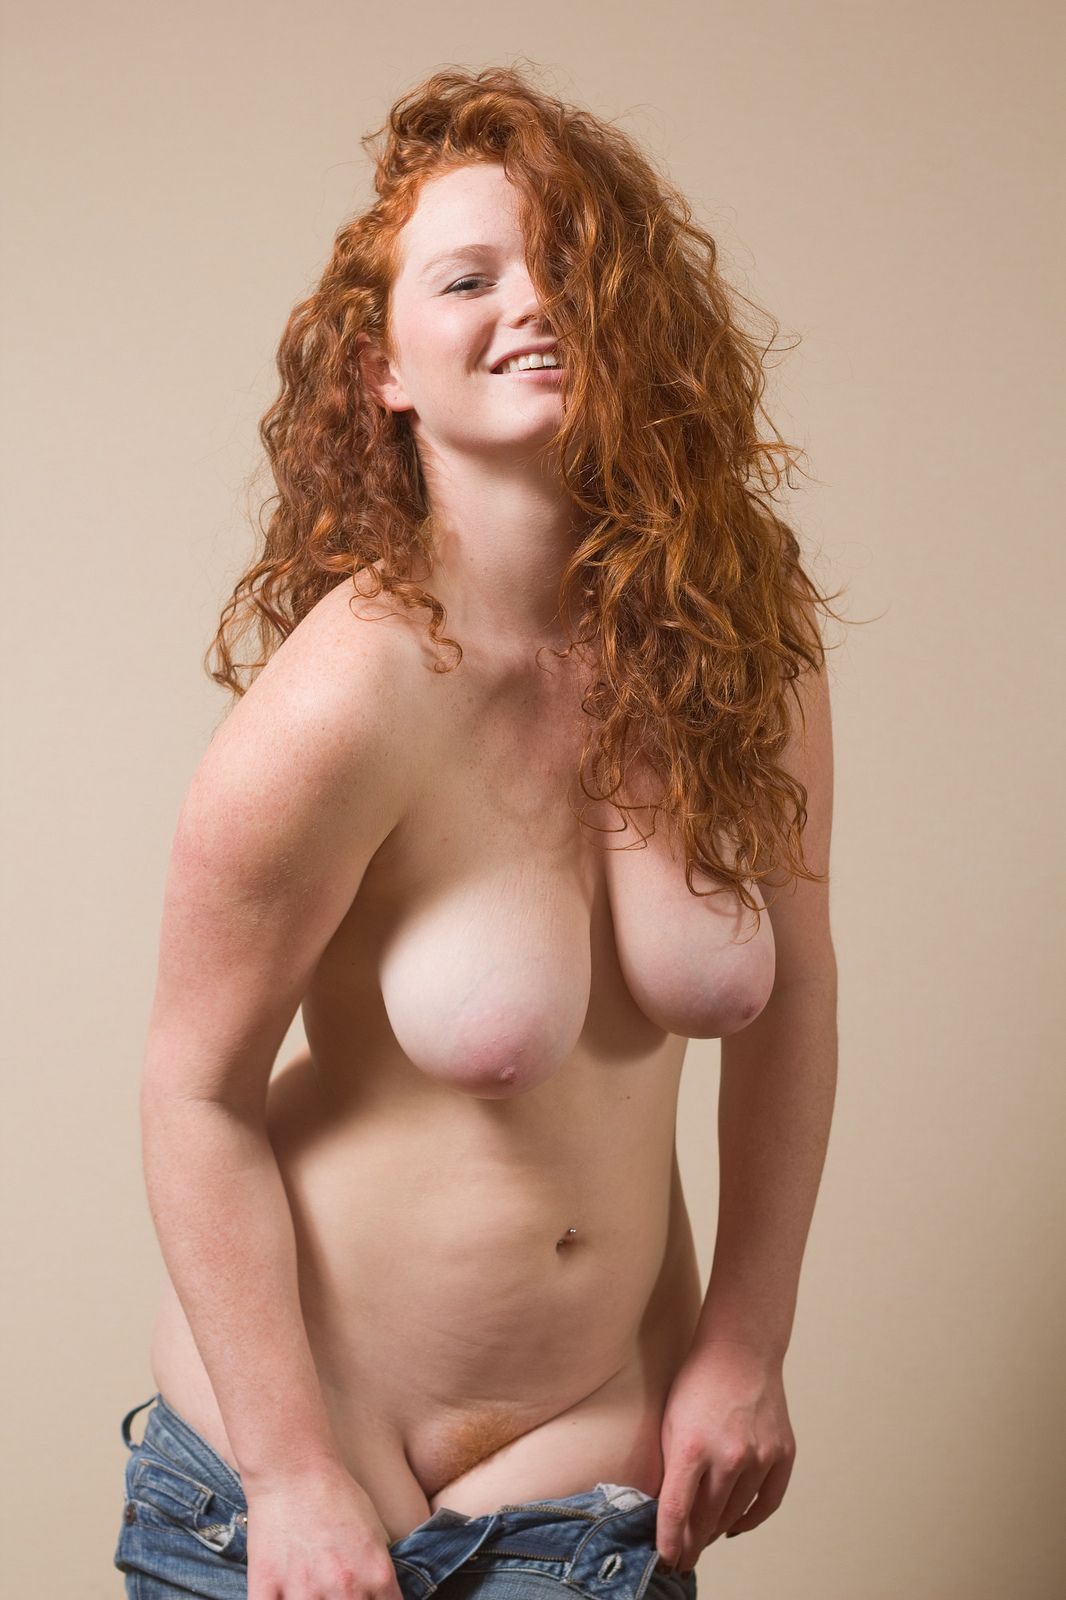 Interesting. Naked fat redhead women